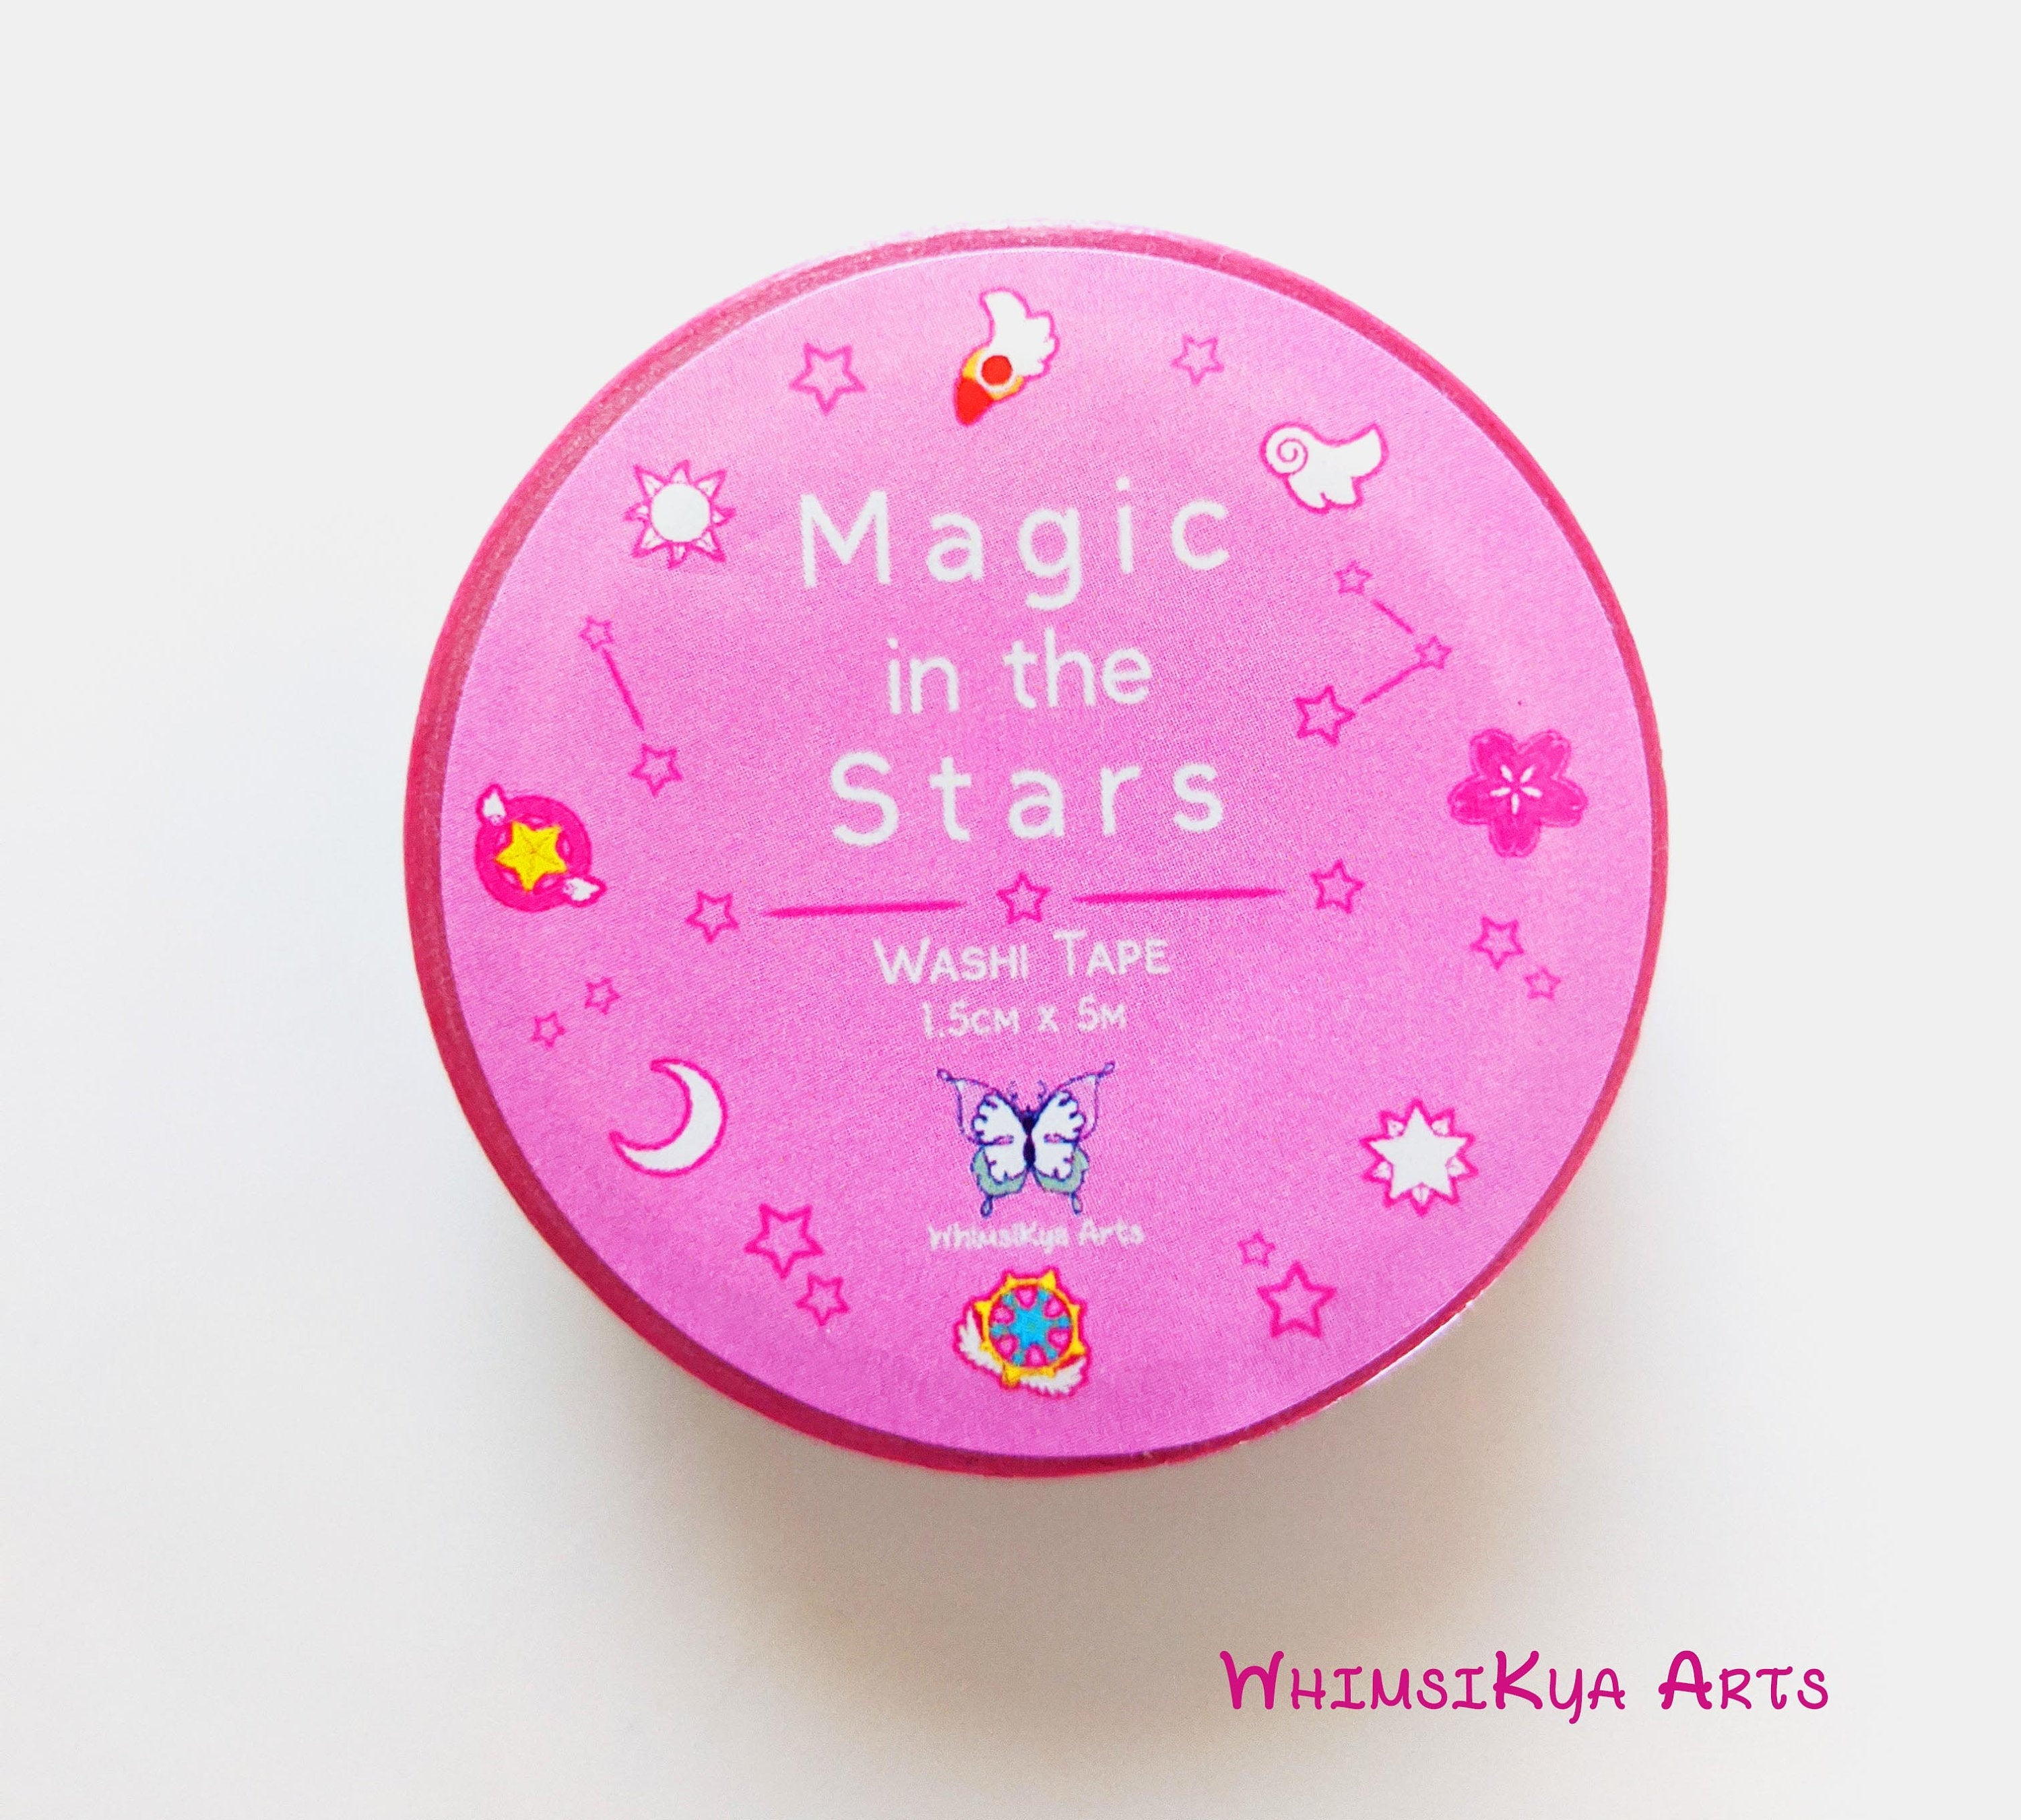 Magic in the Stars Washi